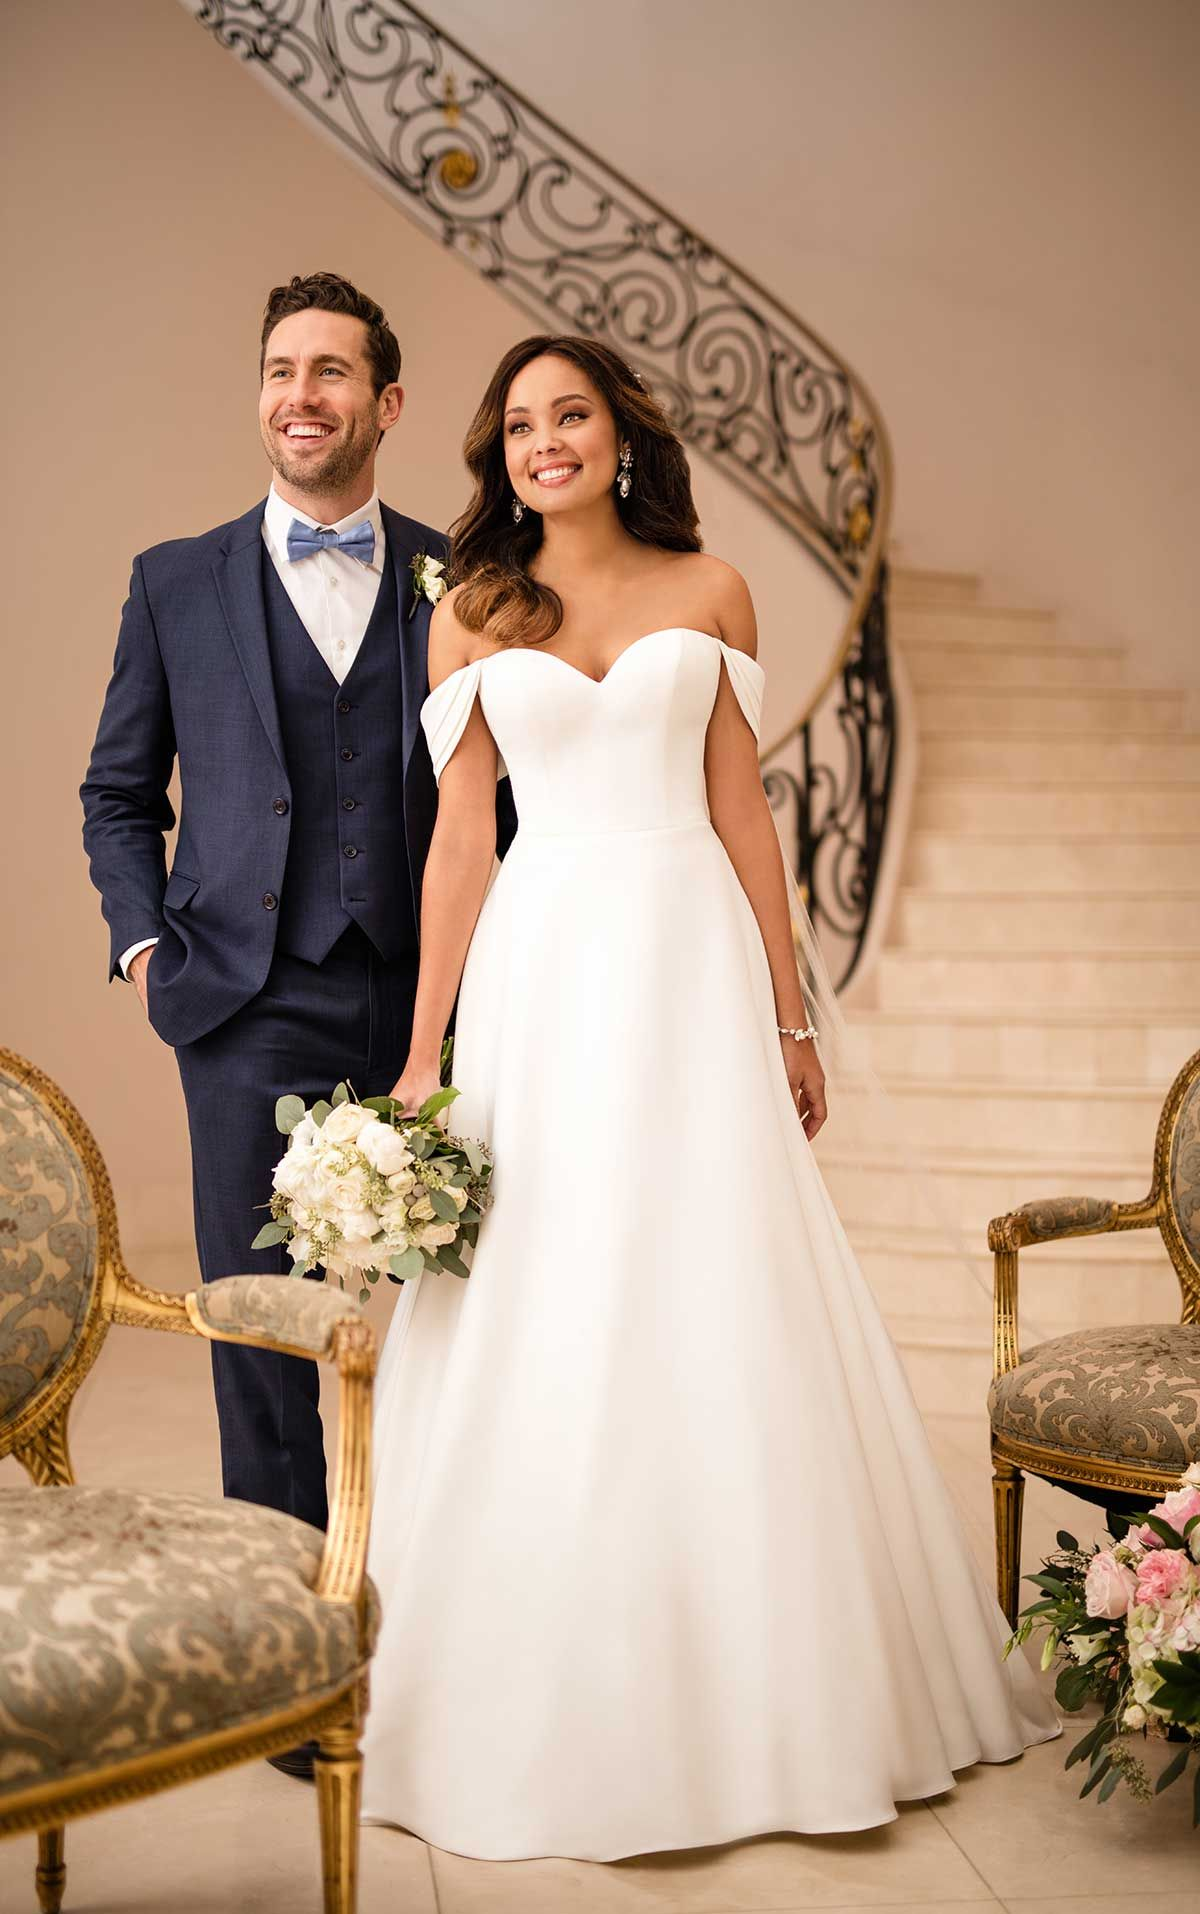 Made from a new dove satin material the lilly wedding dress by